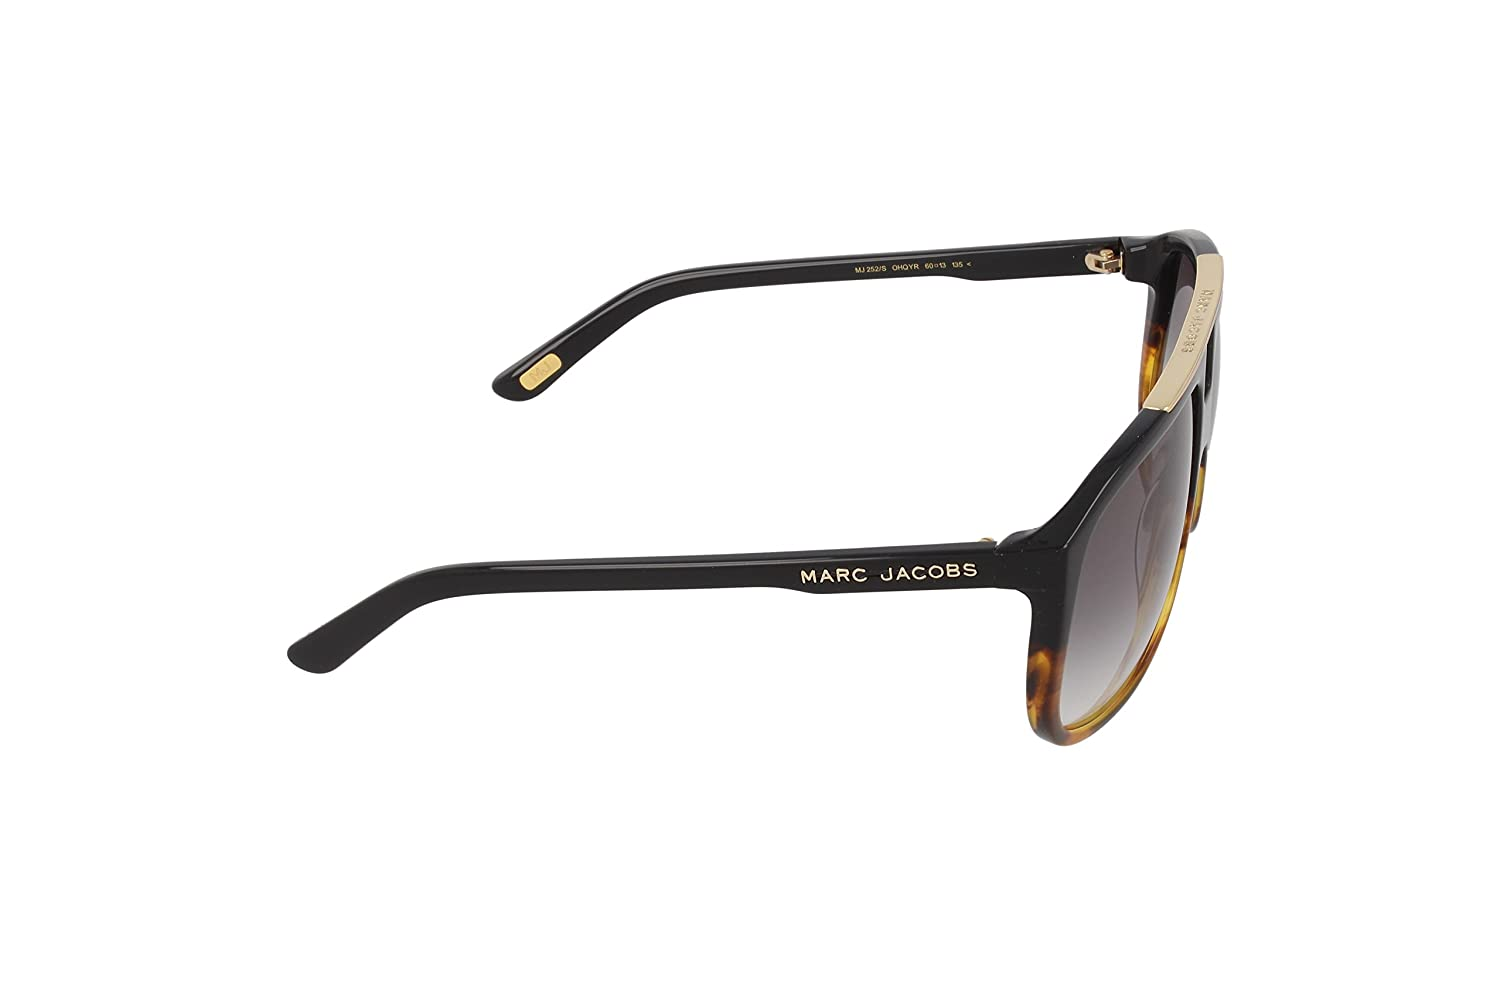 95c608bdbf77 Marc Jacobs Aviator Sunglasses (Black and Brown) (MJ-252 S-OHQYR)   Amazon.in  Clothing   Accessories